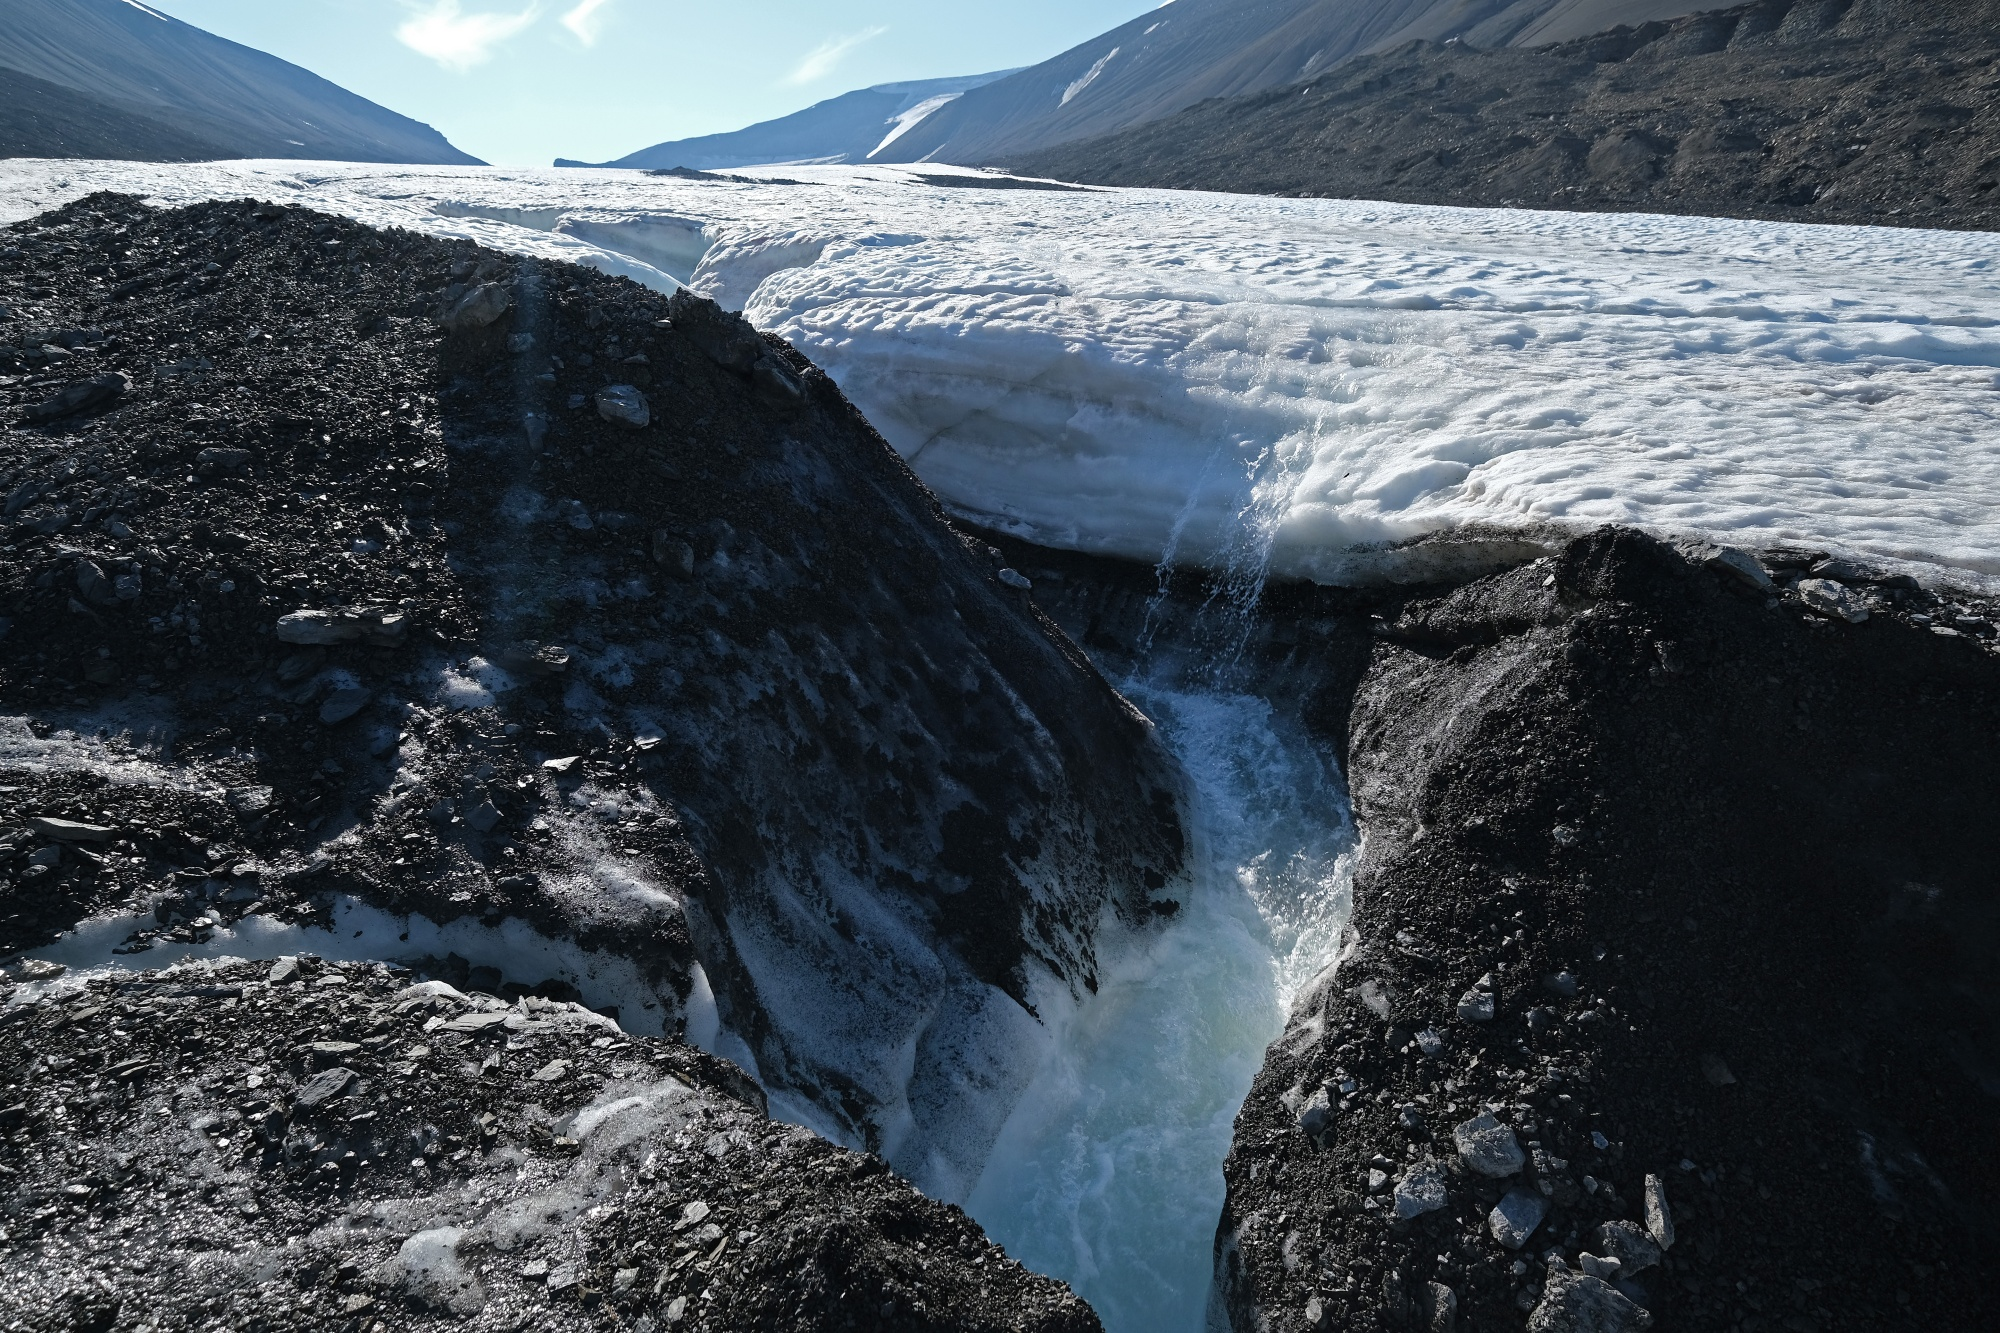 Water flows down from a winding channel on the surface of the melting Longyearbreen glacier during a summer heat wave near Longyearbyen, Norway on July 31, 2020.